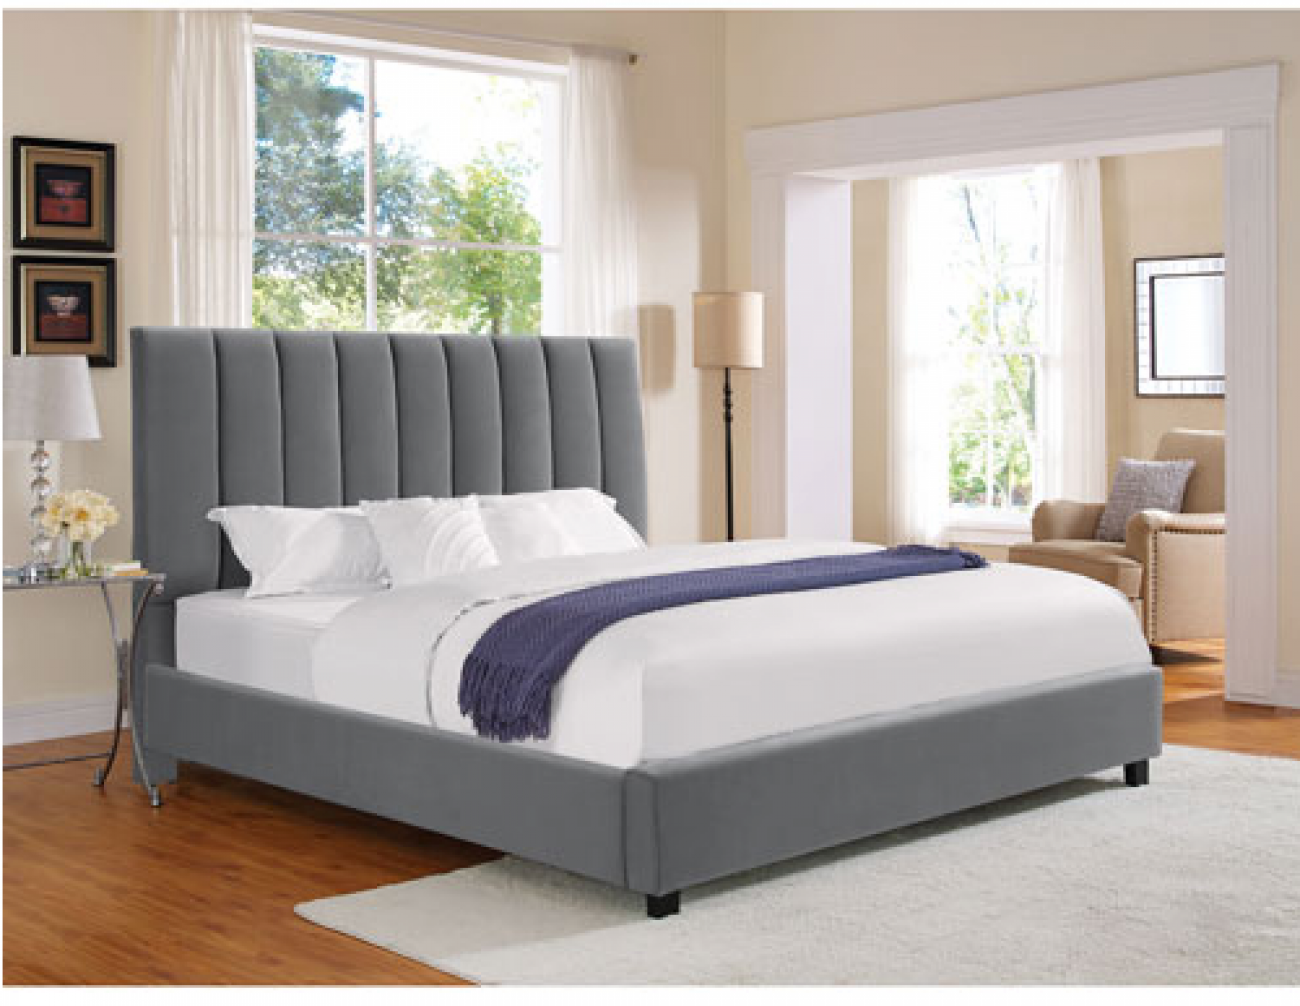 Serta Sarah Collection Transitional Upholstered Bed - Queen - Grey